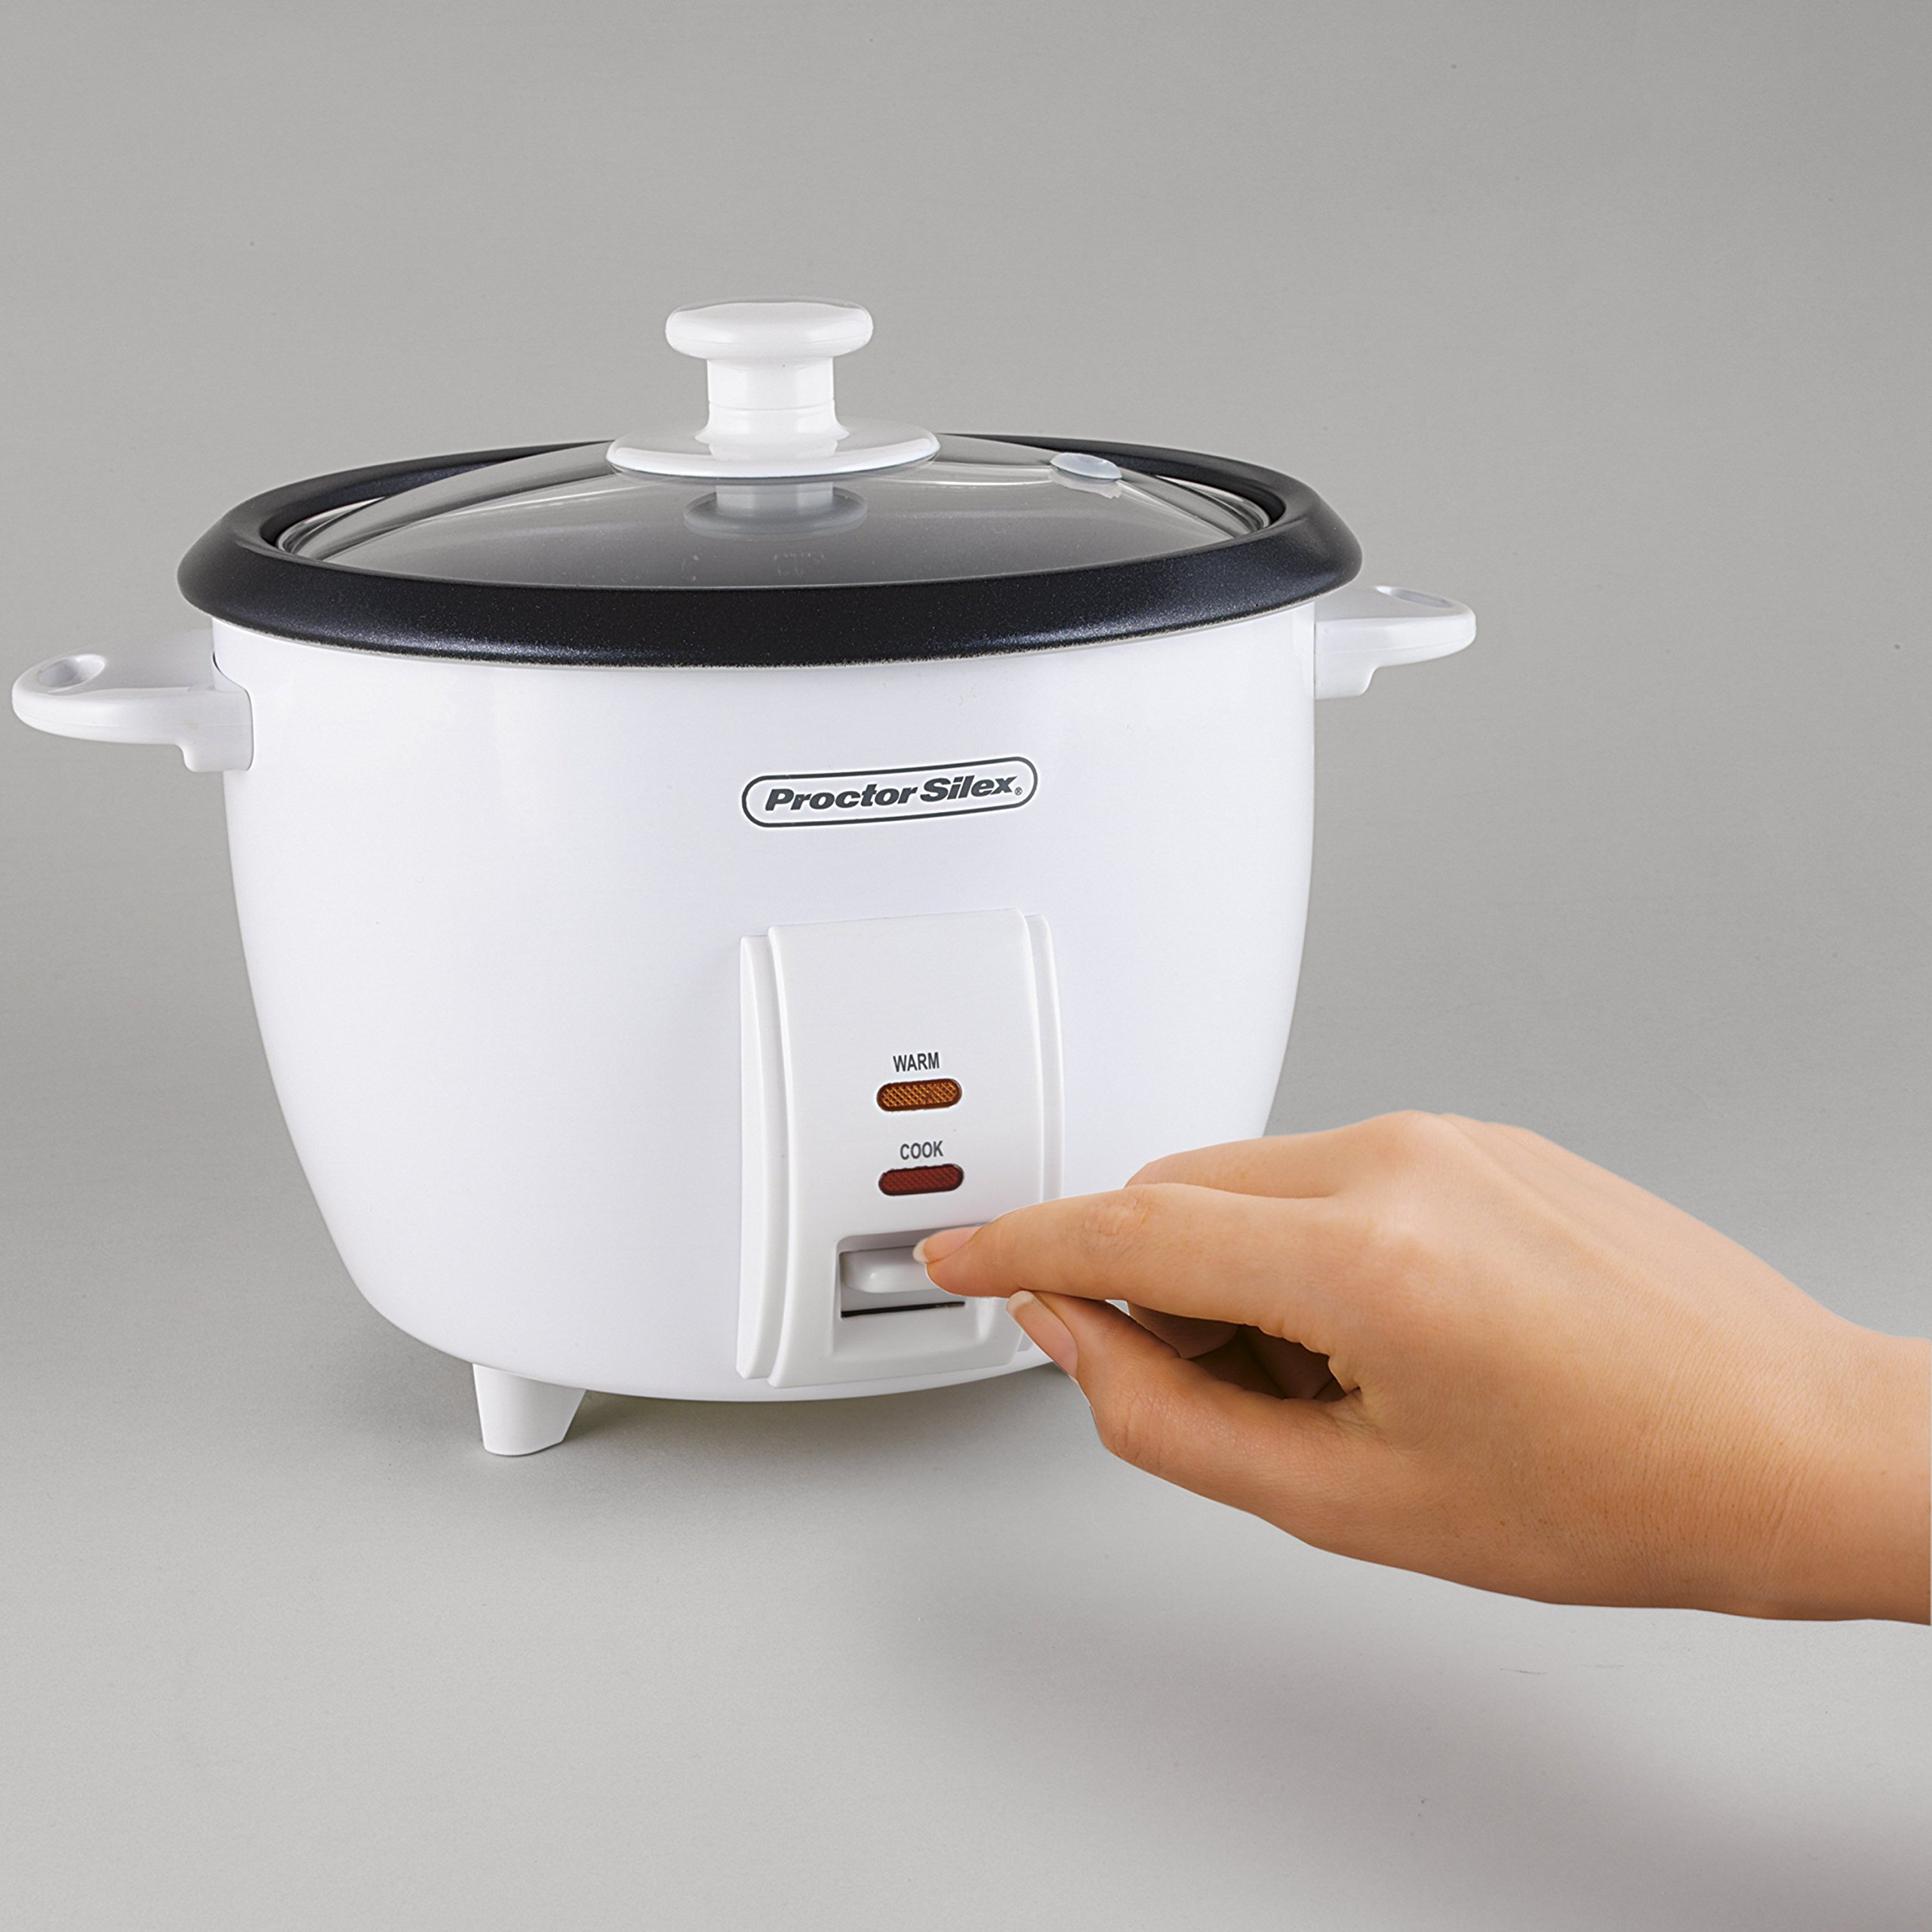 Proctor Silex (37534NR) Rice Cooker 4 Cups uncooked resulting in 8 Cups cooked, Mini, White by Proctor Silex (Image #4)